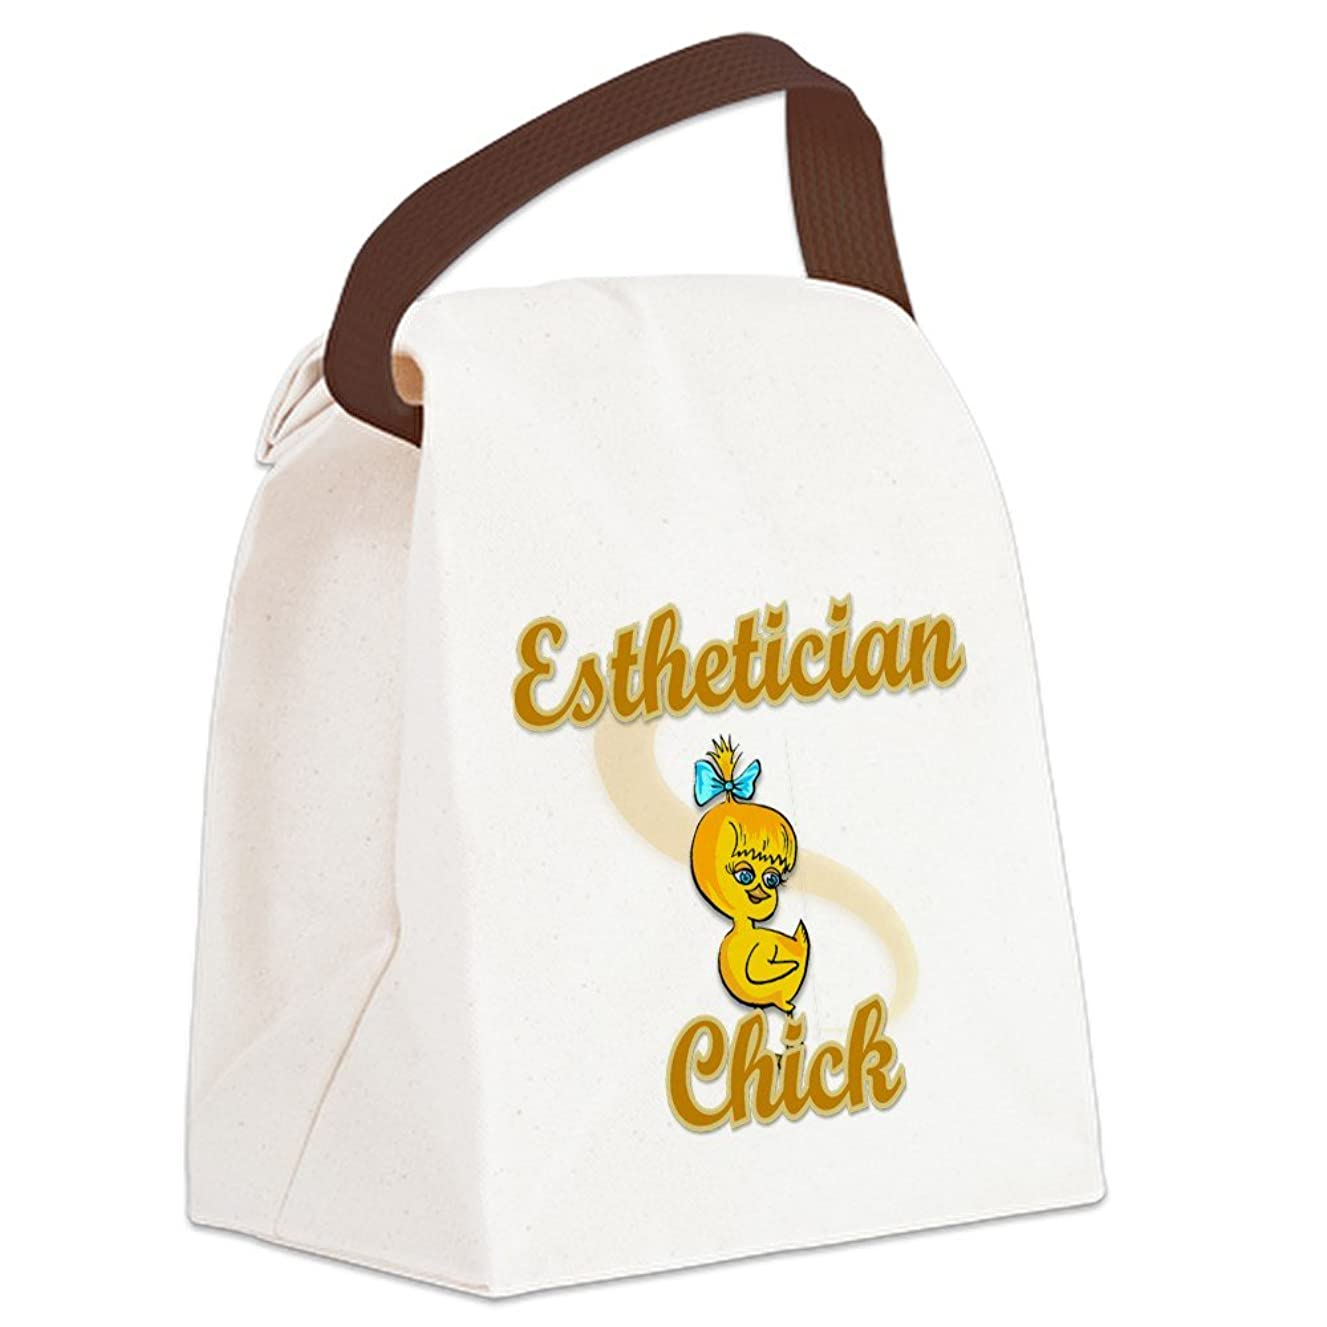 CafePress - Esthetician Chick #2 Canvas Lunch Bag - Canvas Lunch Bag with Strap Handle